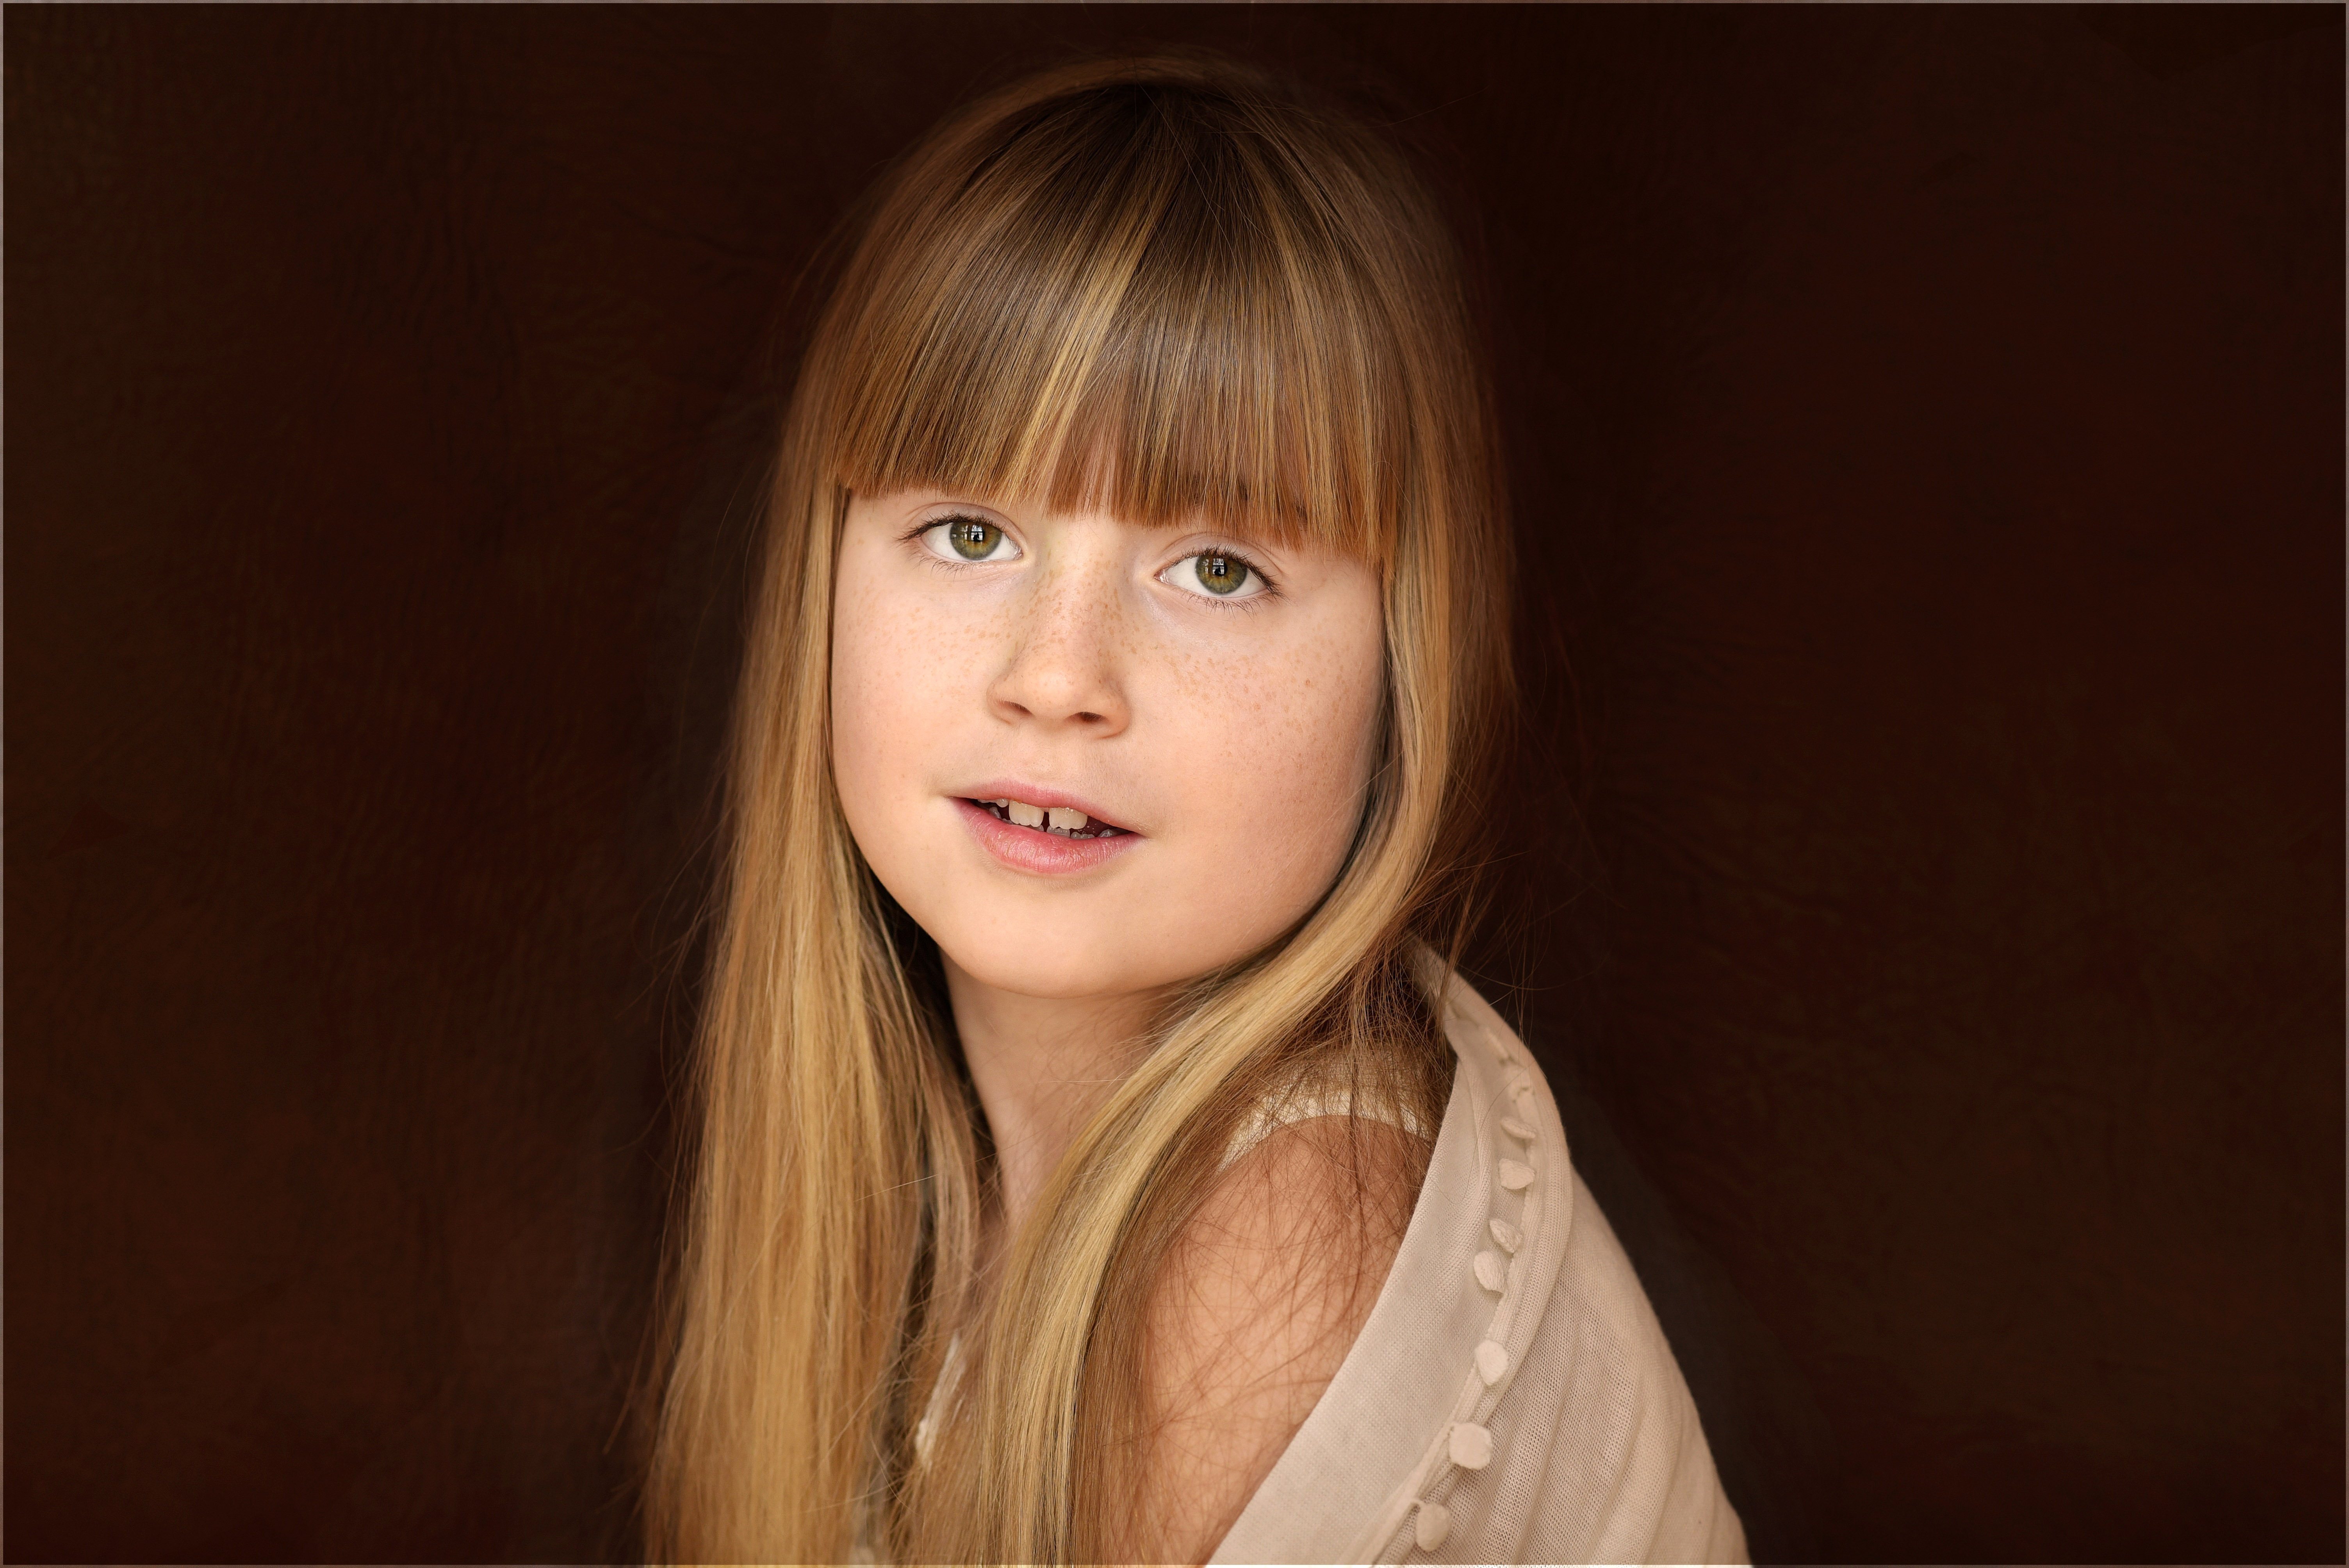 Little girl with blonde hair — photo 2